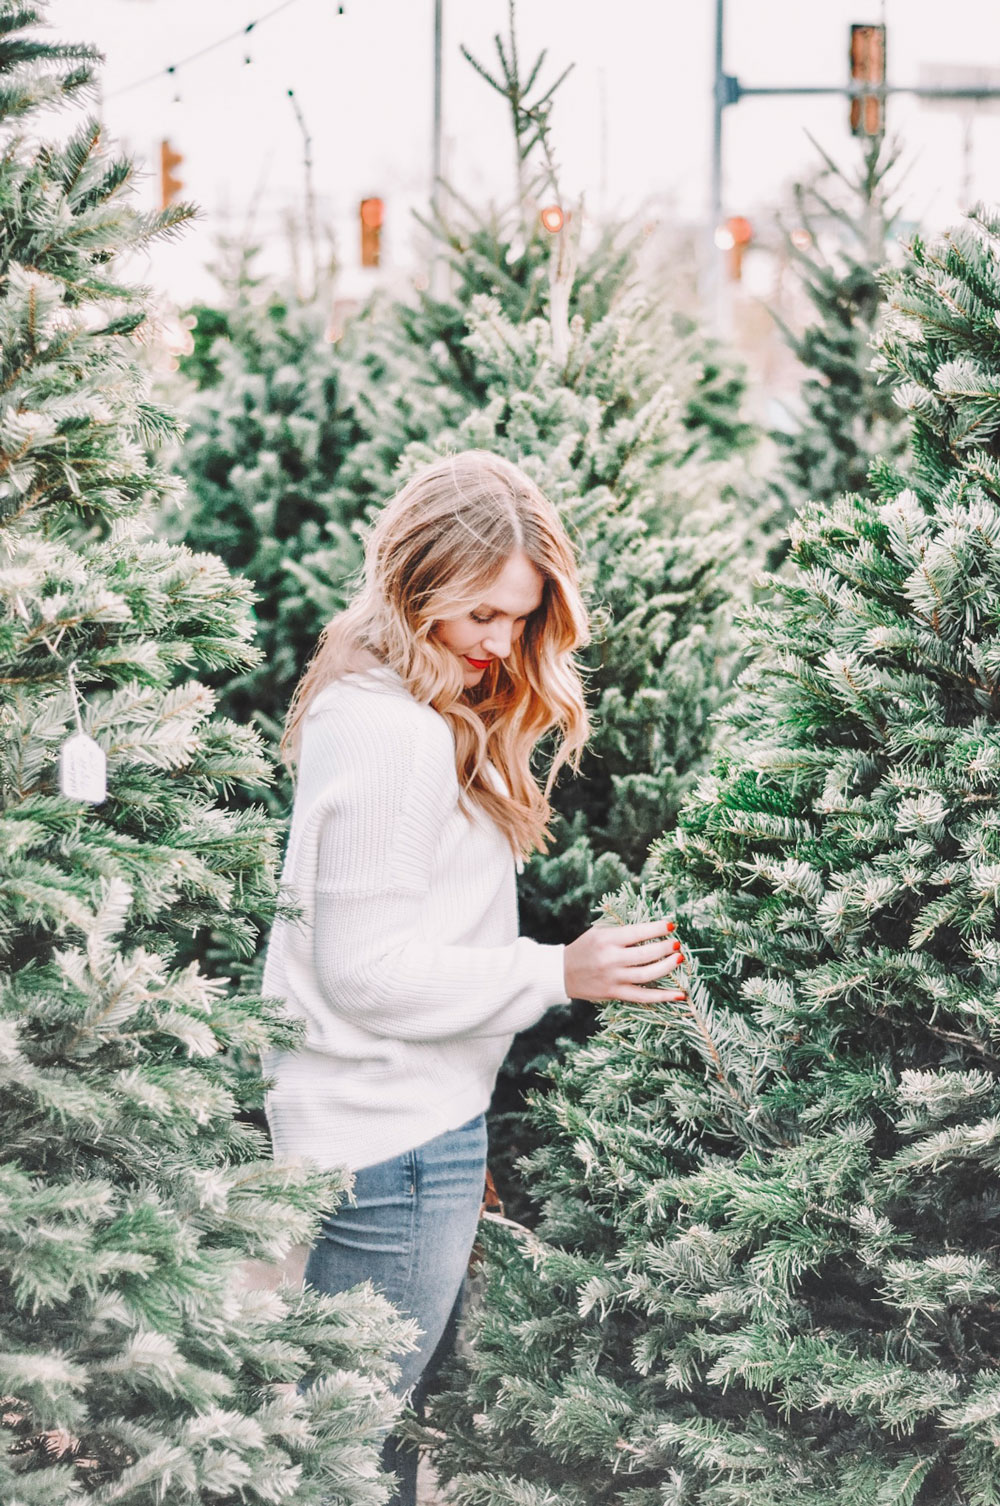 OKC Blogger Amanda Martin shops for live Christmas Trees at the Midtown Holiday Pop-Up Shops